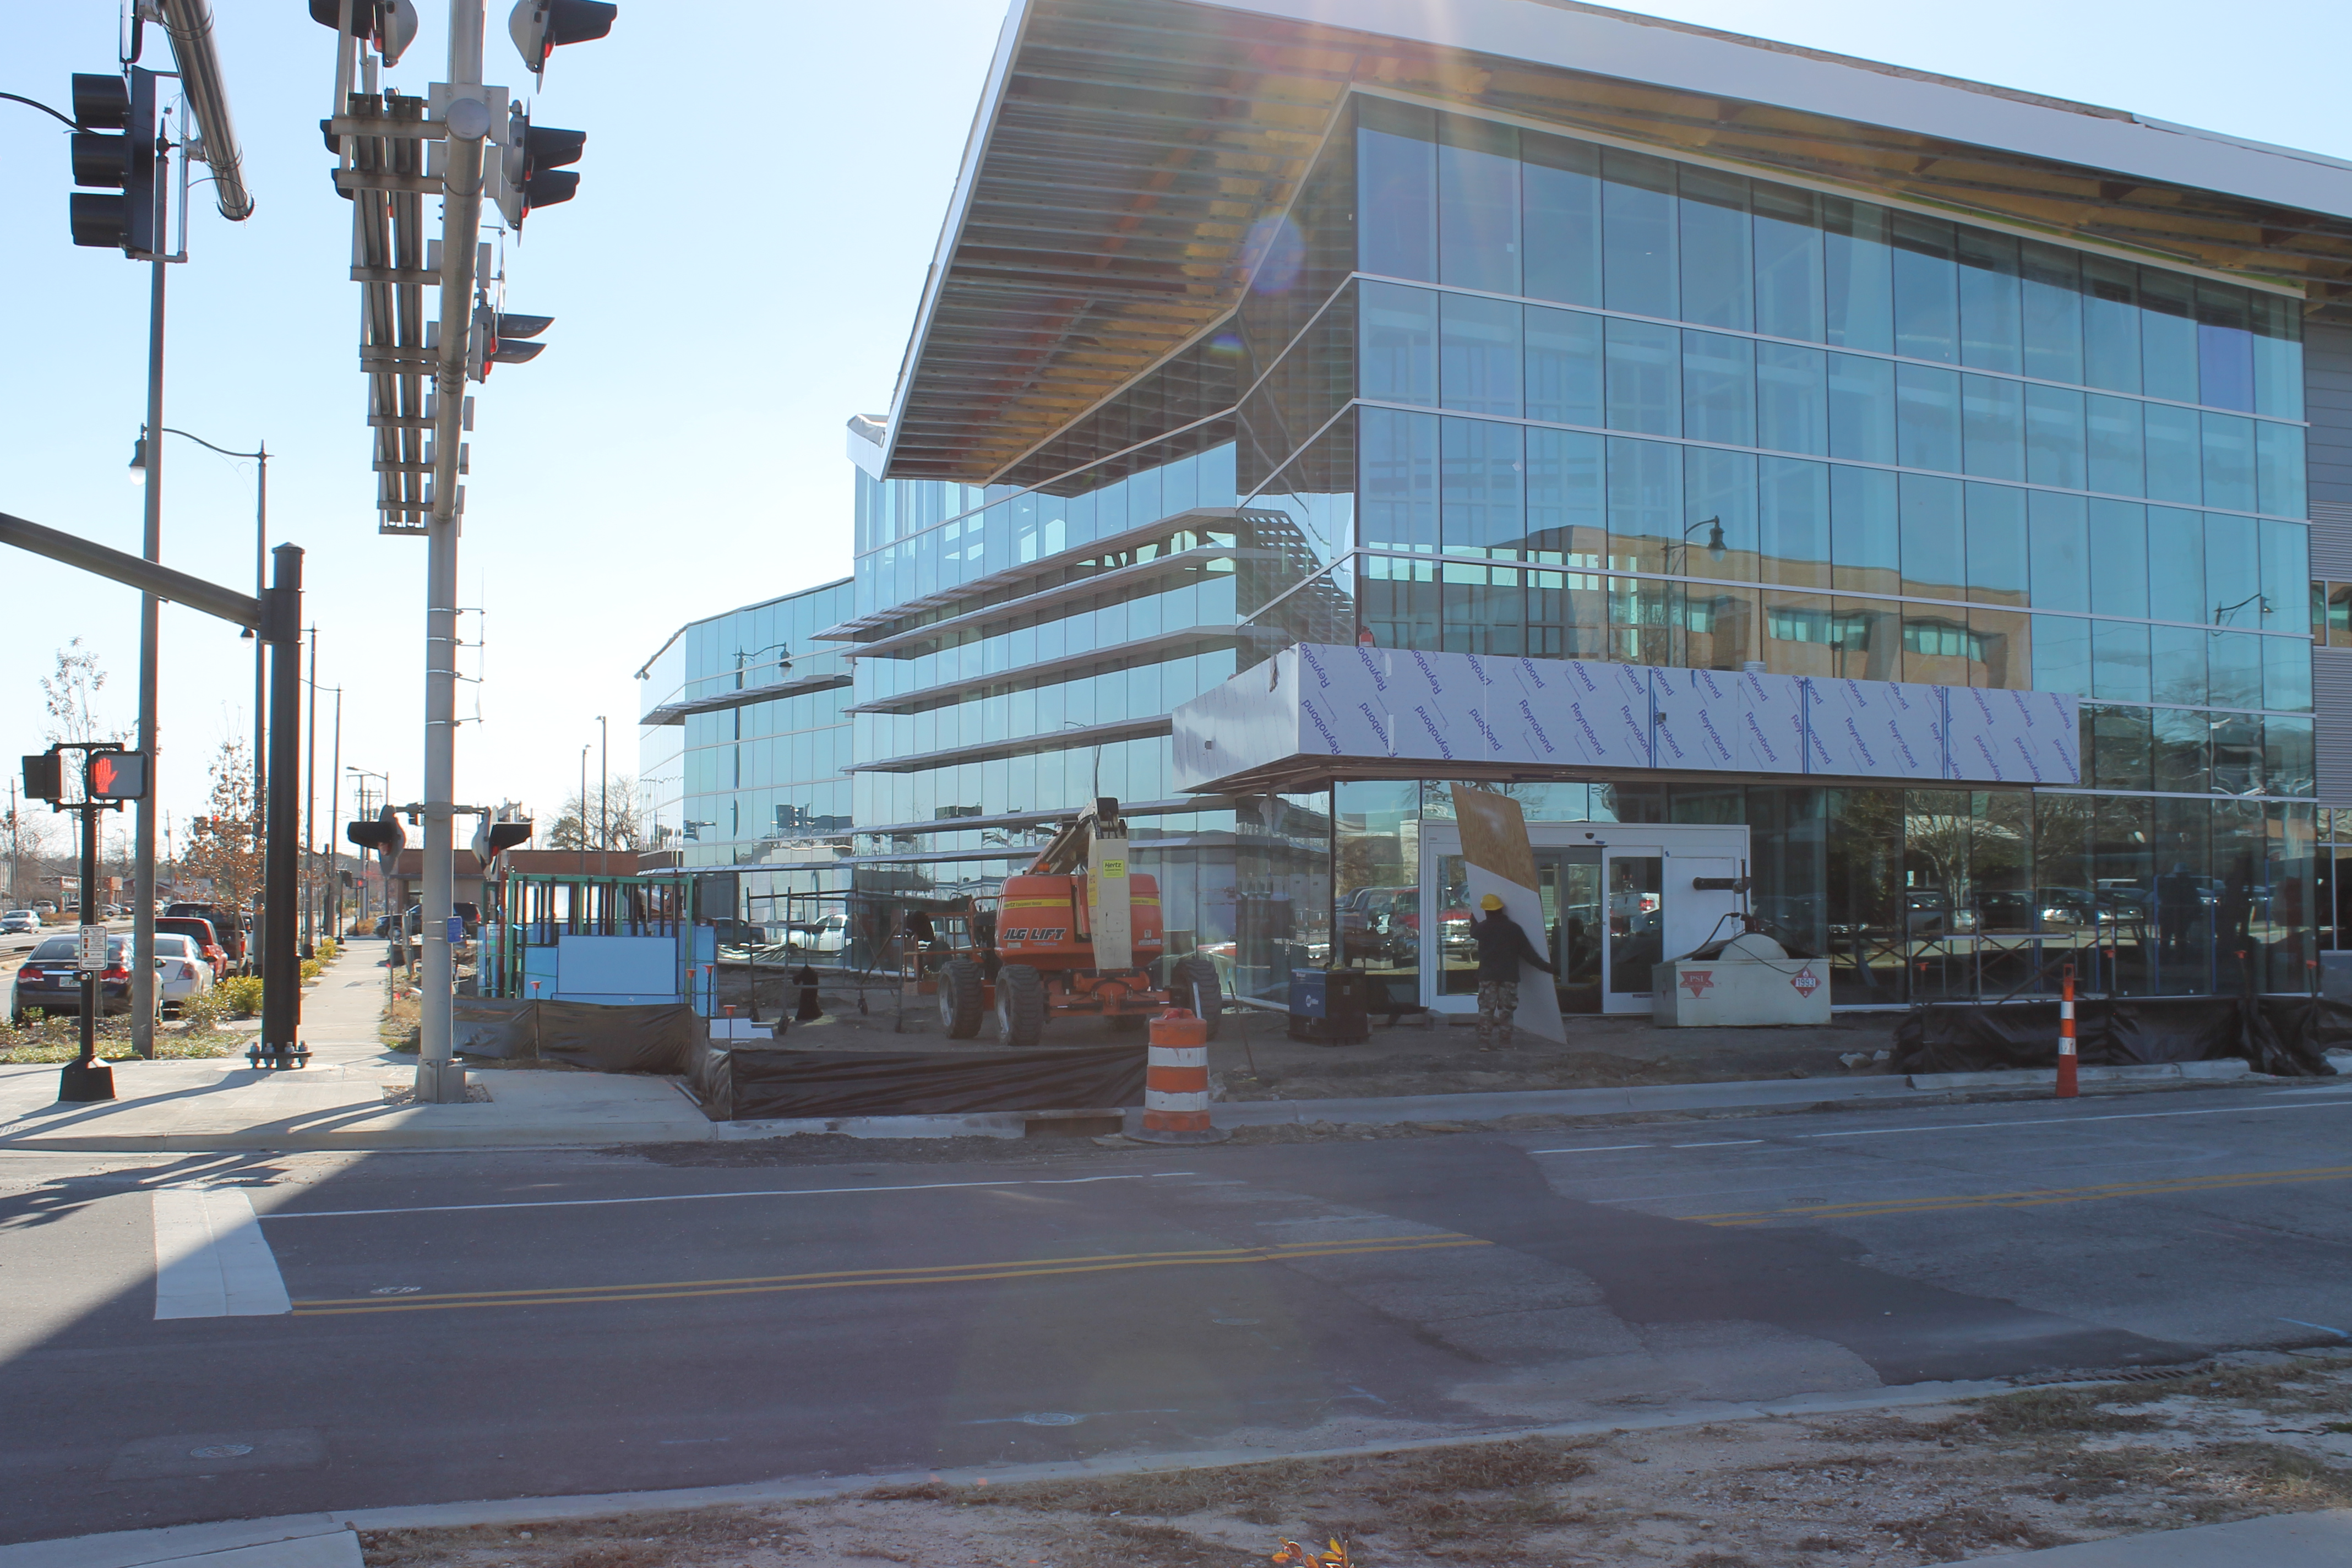 The Fast Transit Center